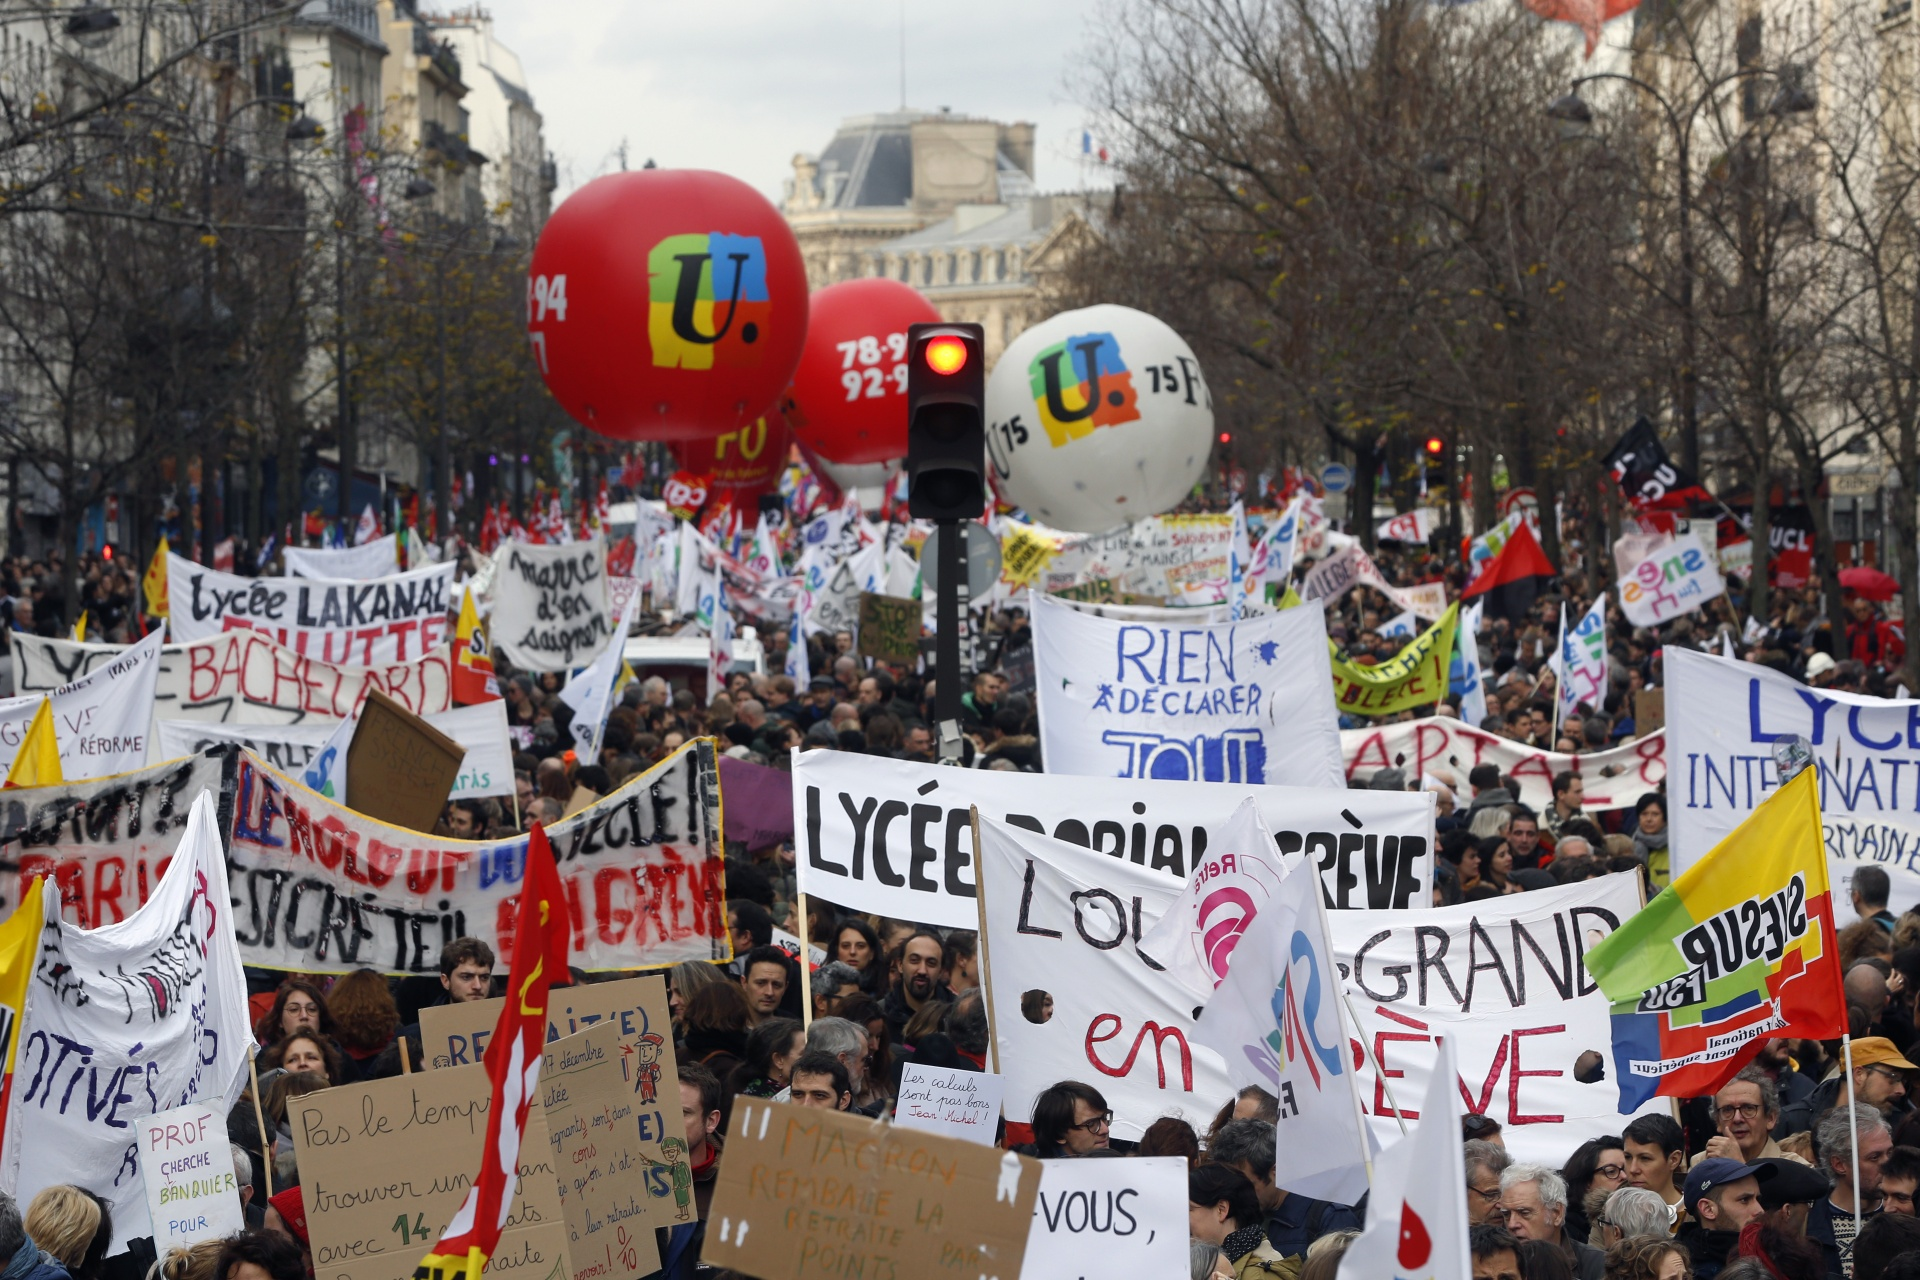 Demonstrators march with banners and union flags during a protest against pension reform plans in Paris